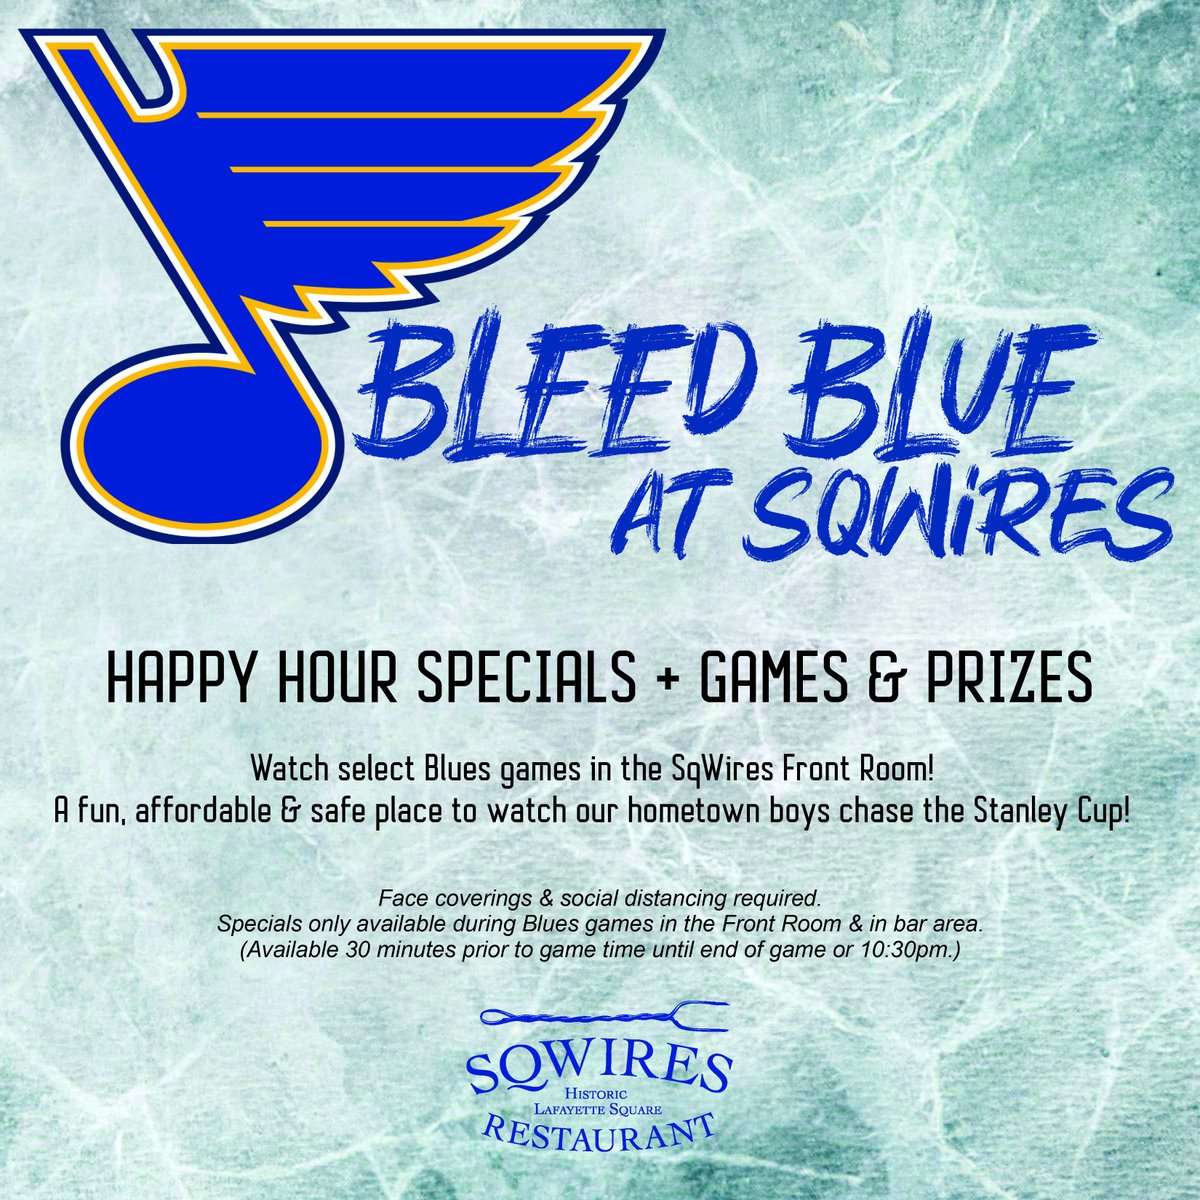 Who's ready to cheer on the #stlblues with us?!  (Starts with tomorrow's game!)  #stlrestaurants #stlevents #LGB #happyhour #stlfood